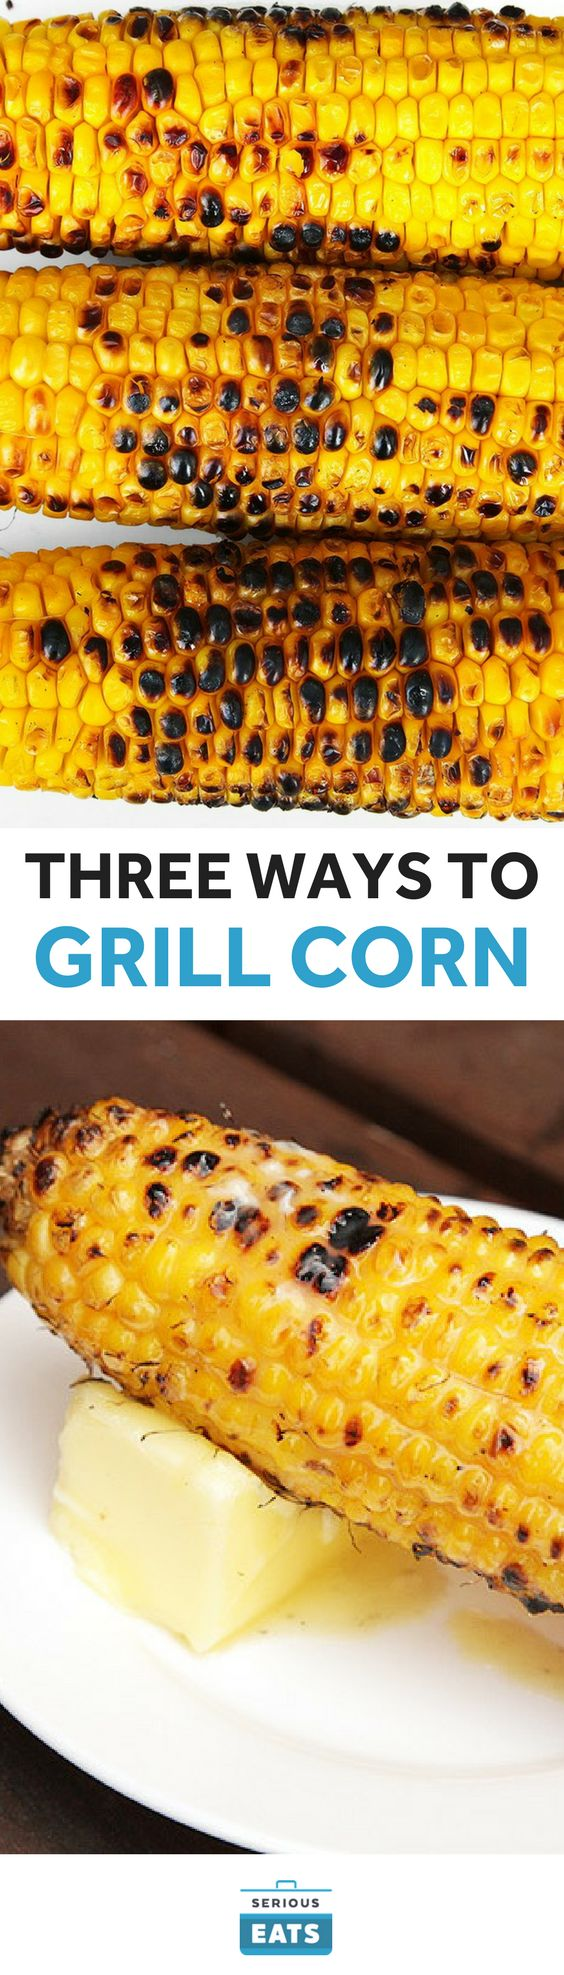 We may not be able to agree on the best way to grill corn, but let's at least have a delicious ear or two shoved in our mouths while arguing it over, agreed?